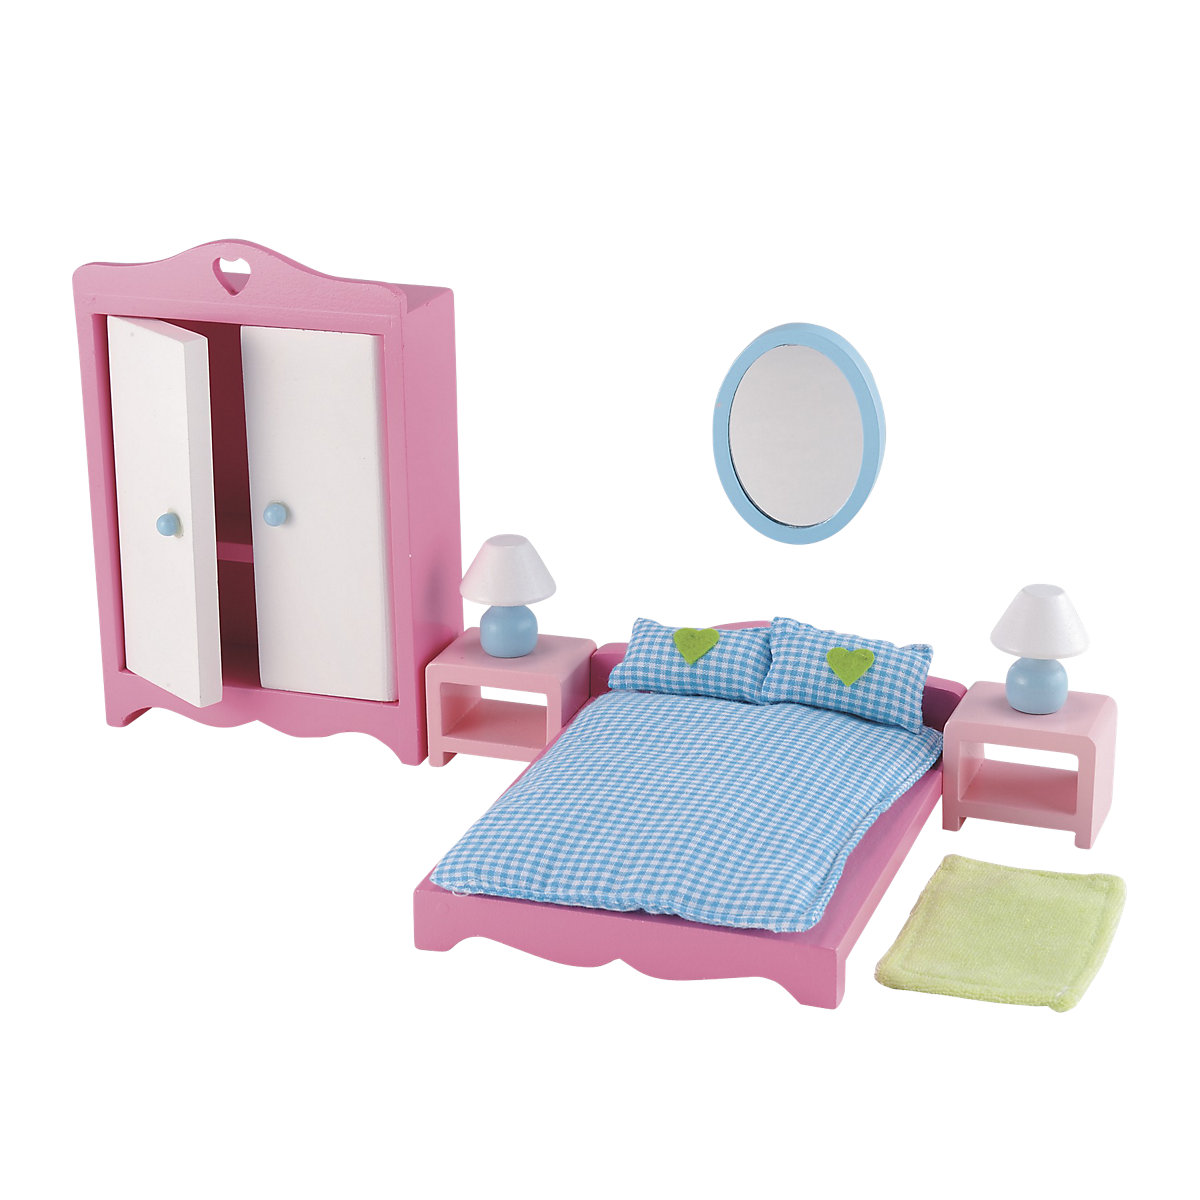 New ELC Girl Rosebud House Bedroom Set Toy From 3 years